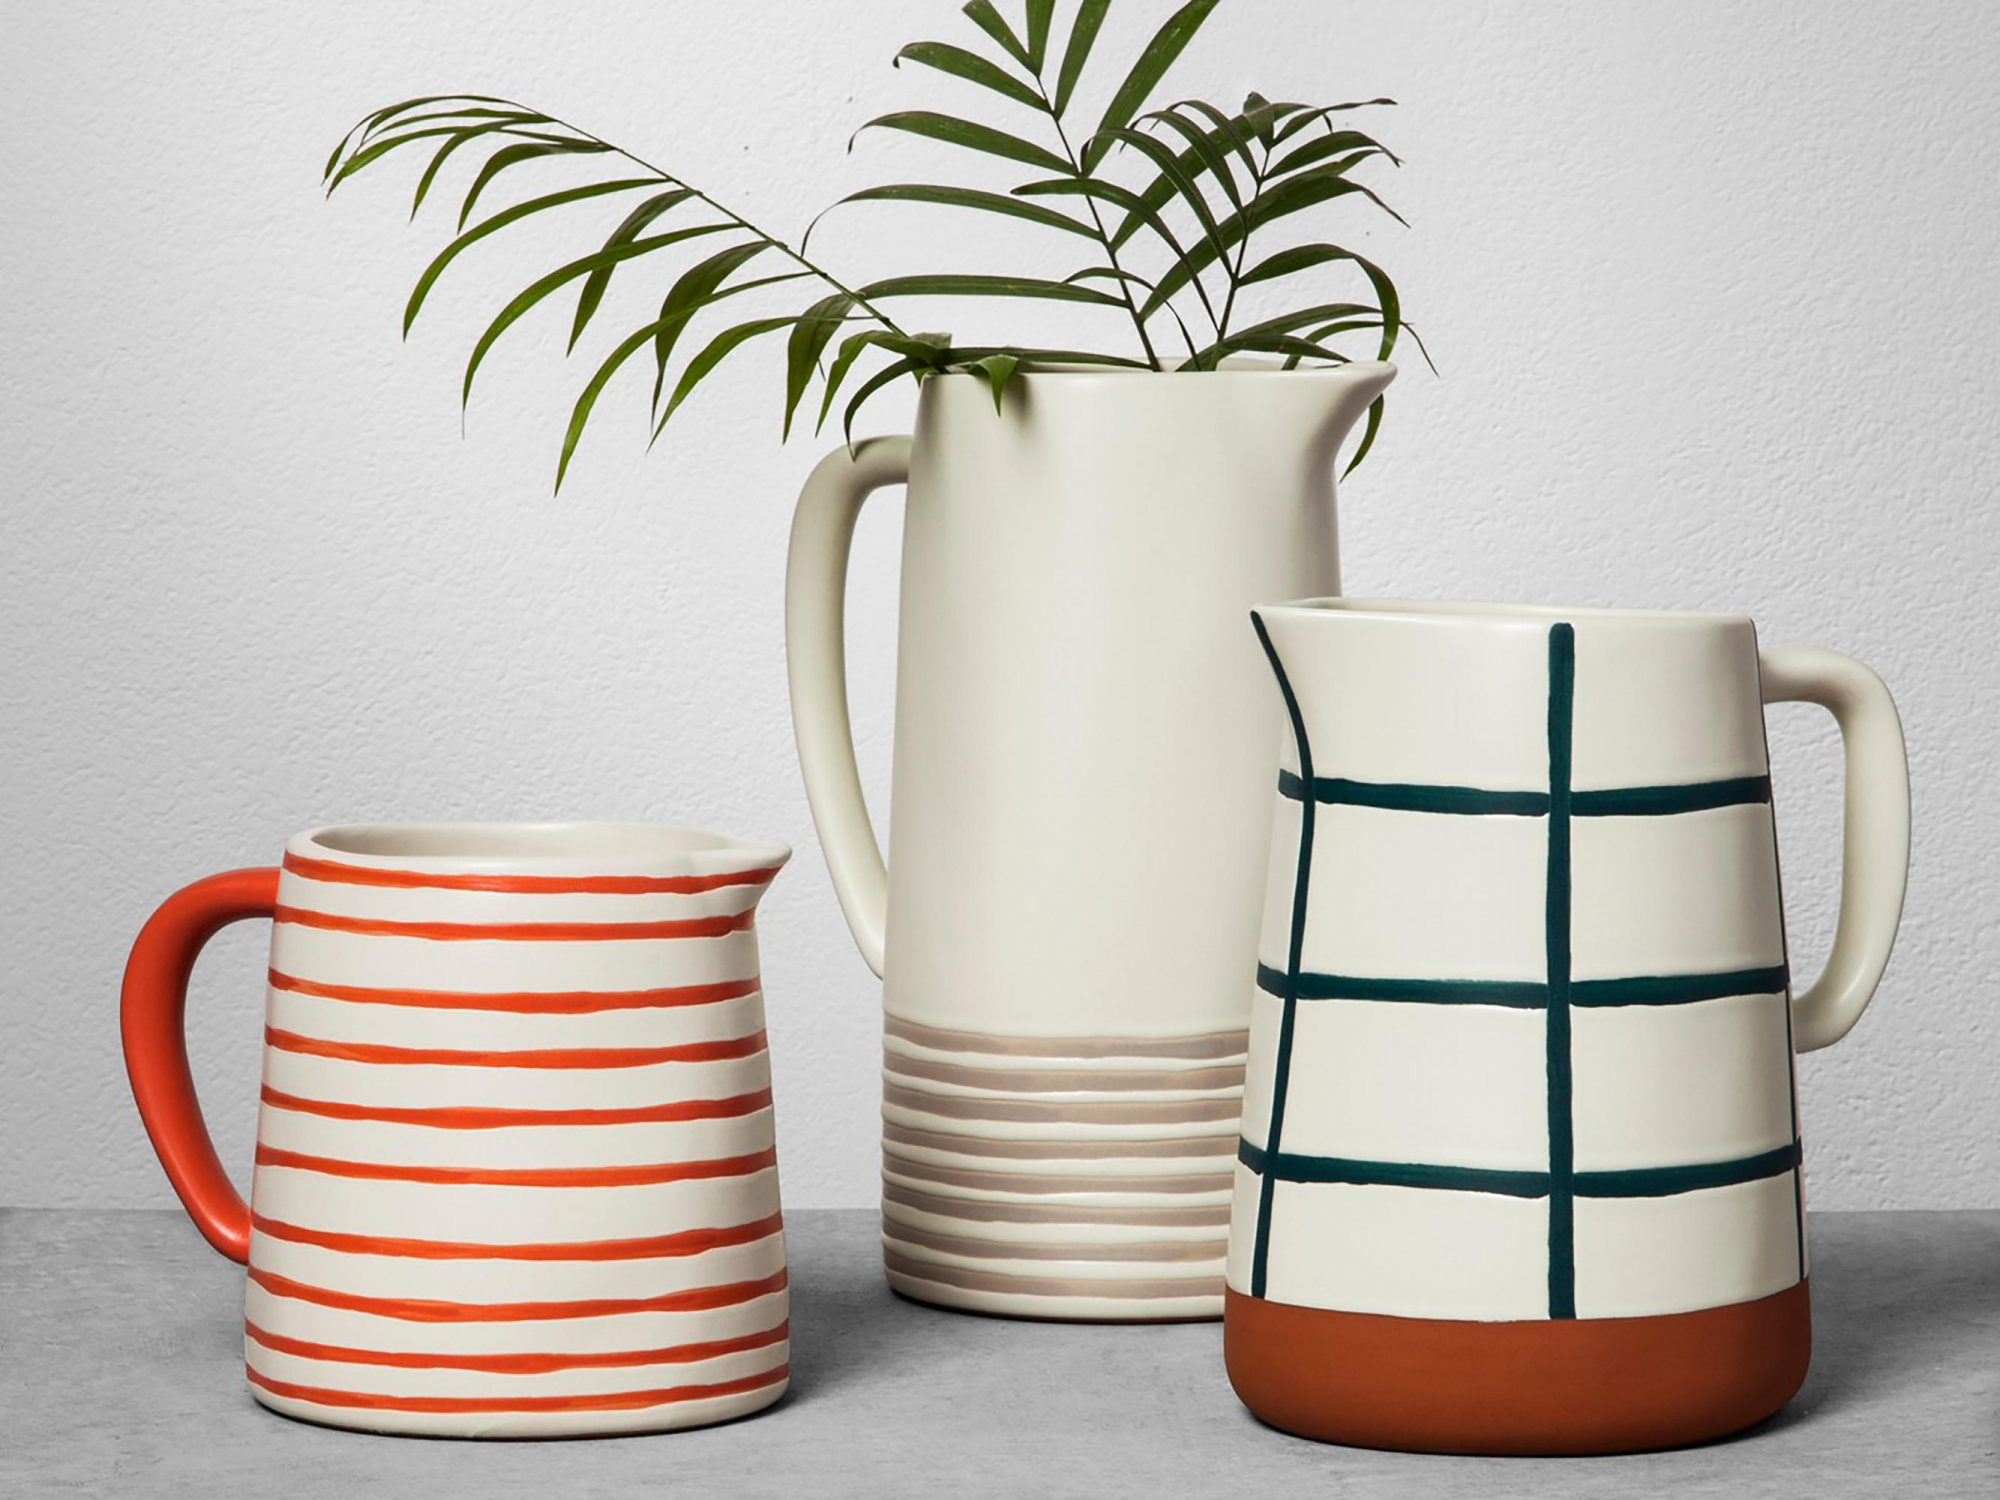 5 of Our Favorite Kitchen Buys From Joanna and Chip's Target Collection 1804w-Joanna-Gaines-Pitchers